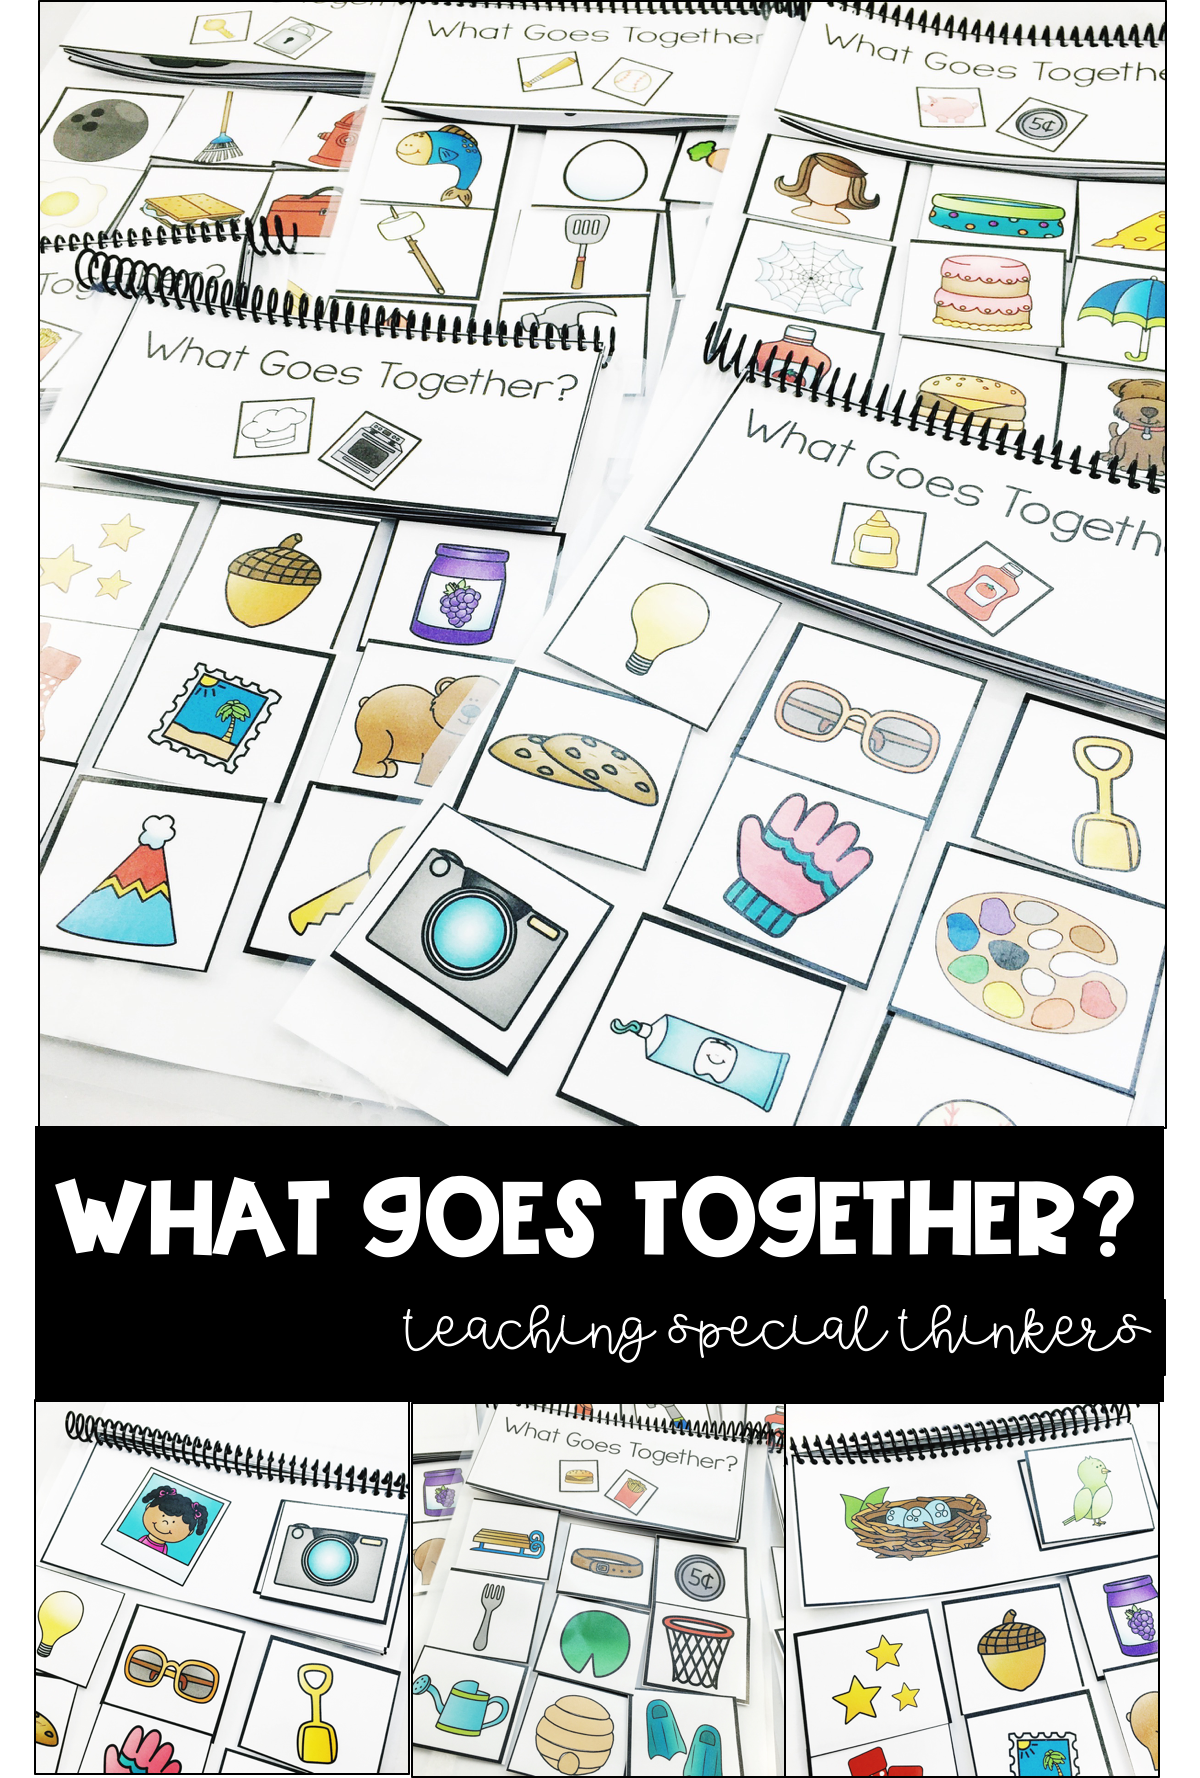 What Goes Together Association Flipbooks